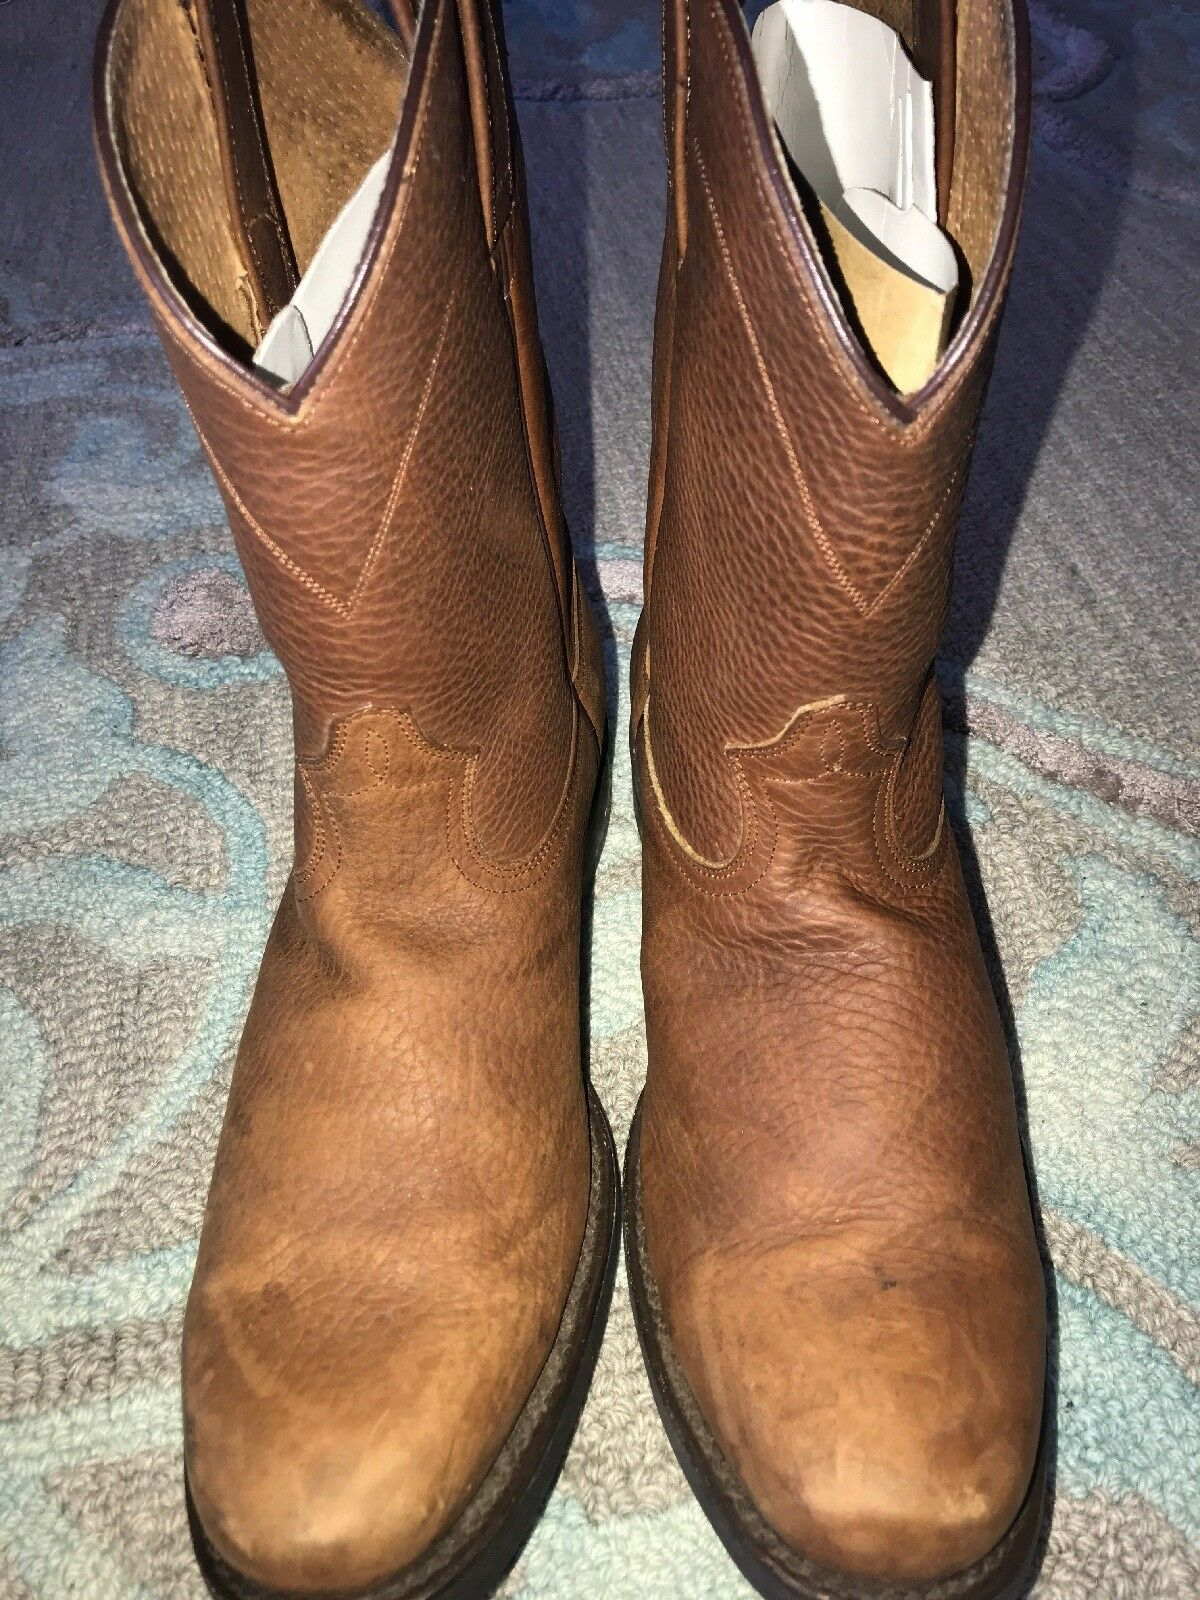 Western Cowboy Boots Made In Mexico Sz 9.5 Forastero